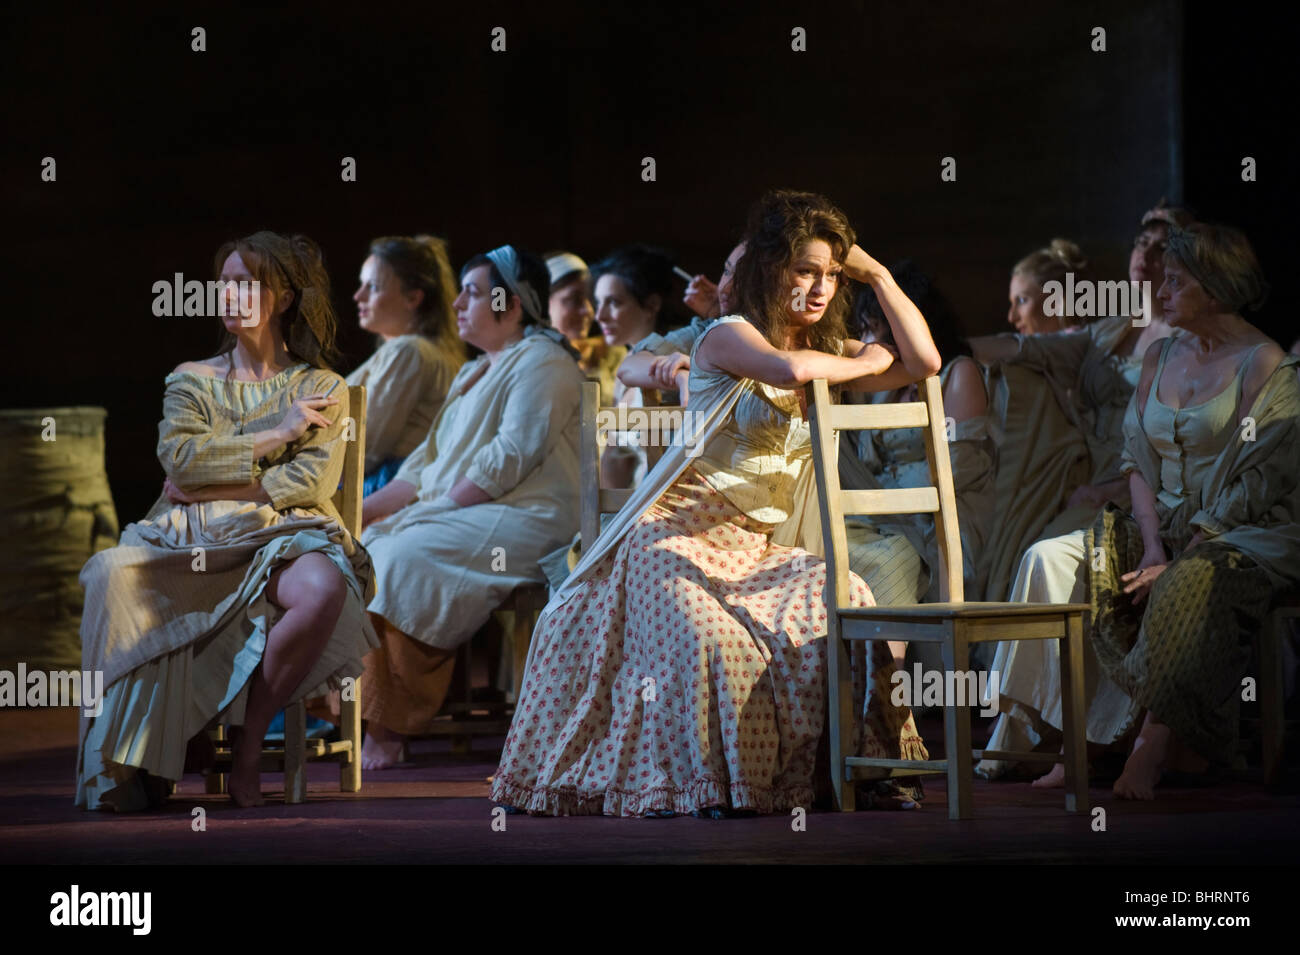 Welsh National Opera production of Carmen by Bizet at Wales Millennium Centre Cardiff South Wales UK - Stock Image